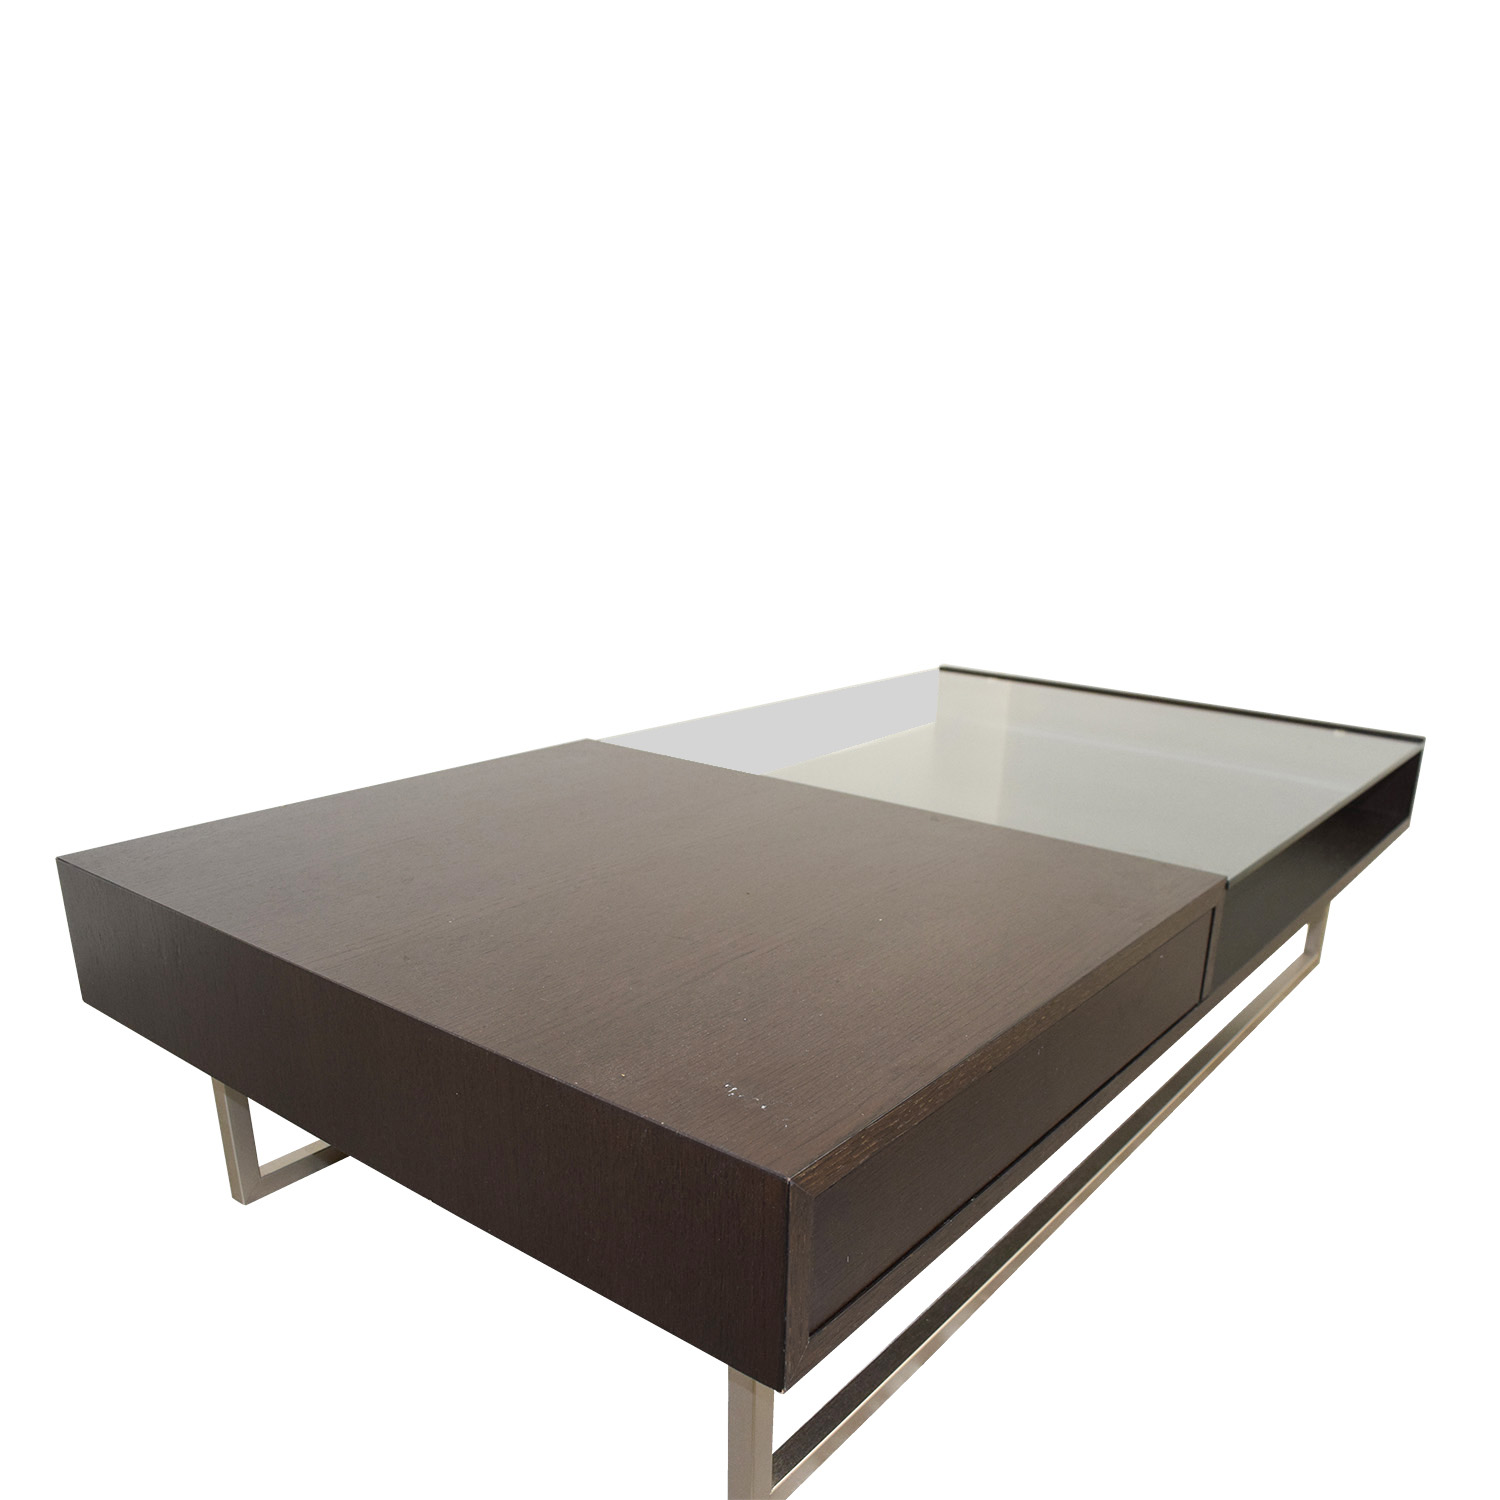 54 off natuzzi italia natuzzi walnut glass coffee table tables Coffee table buy